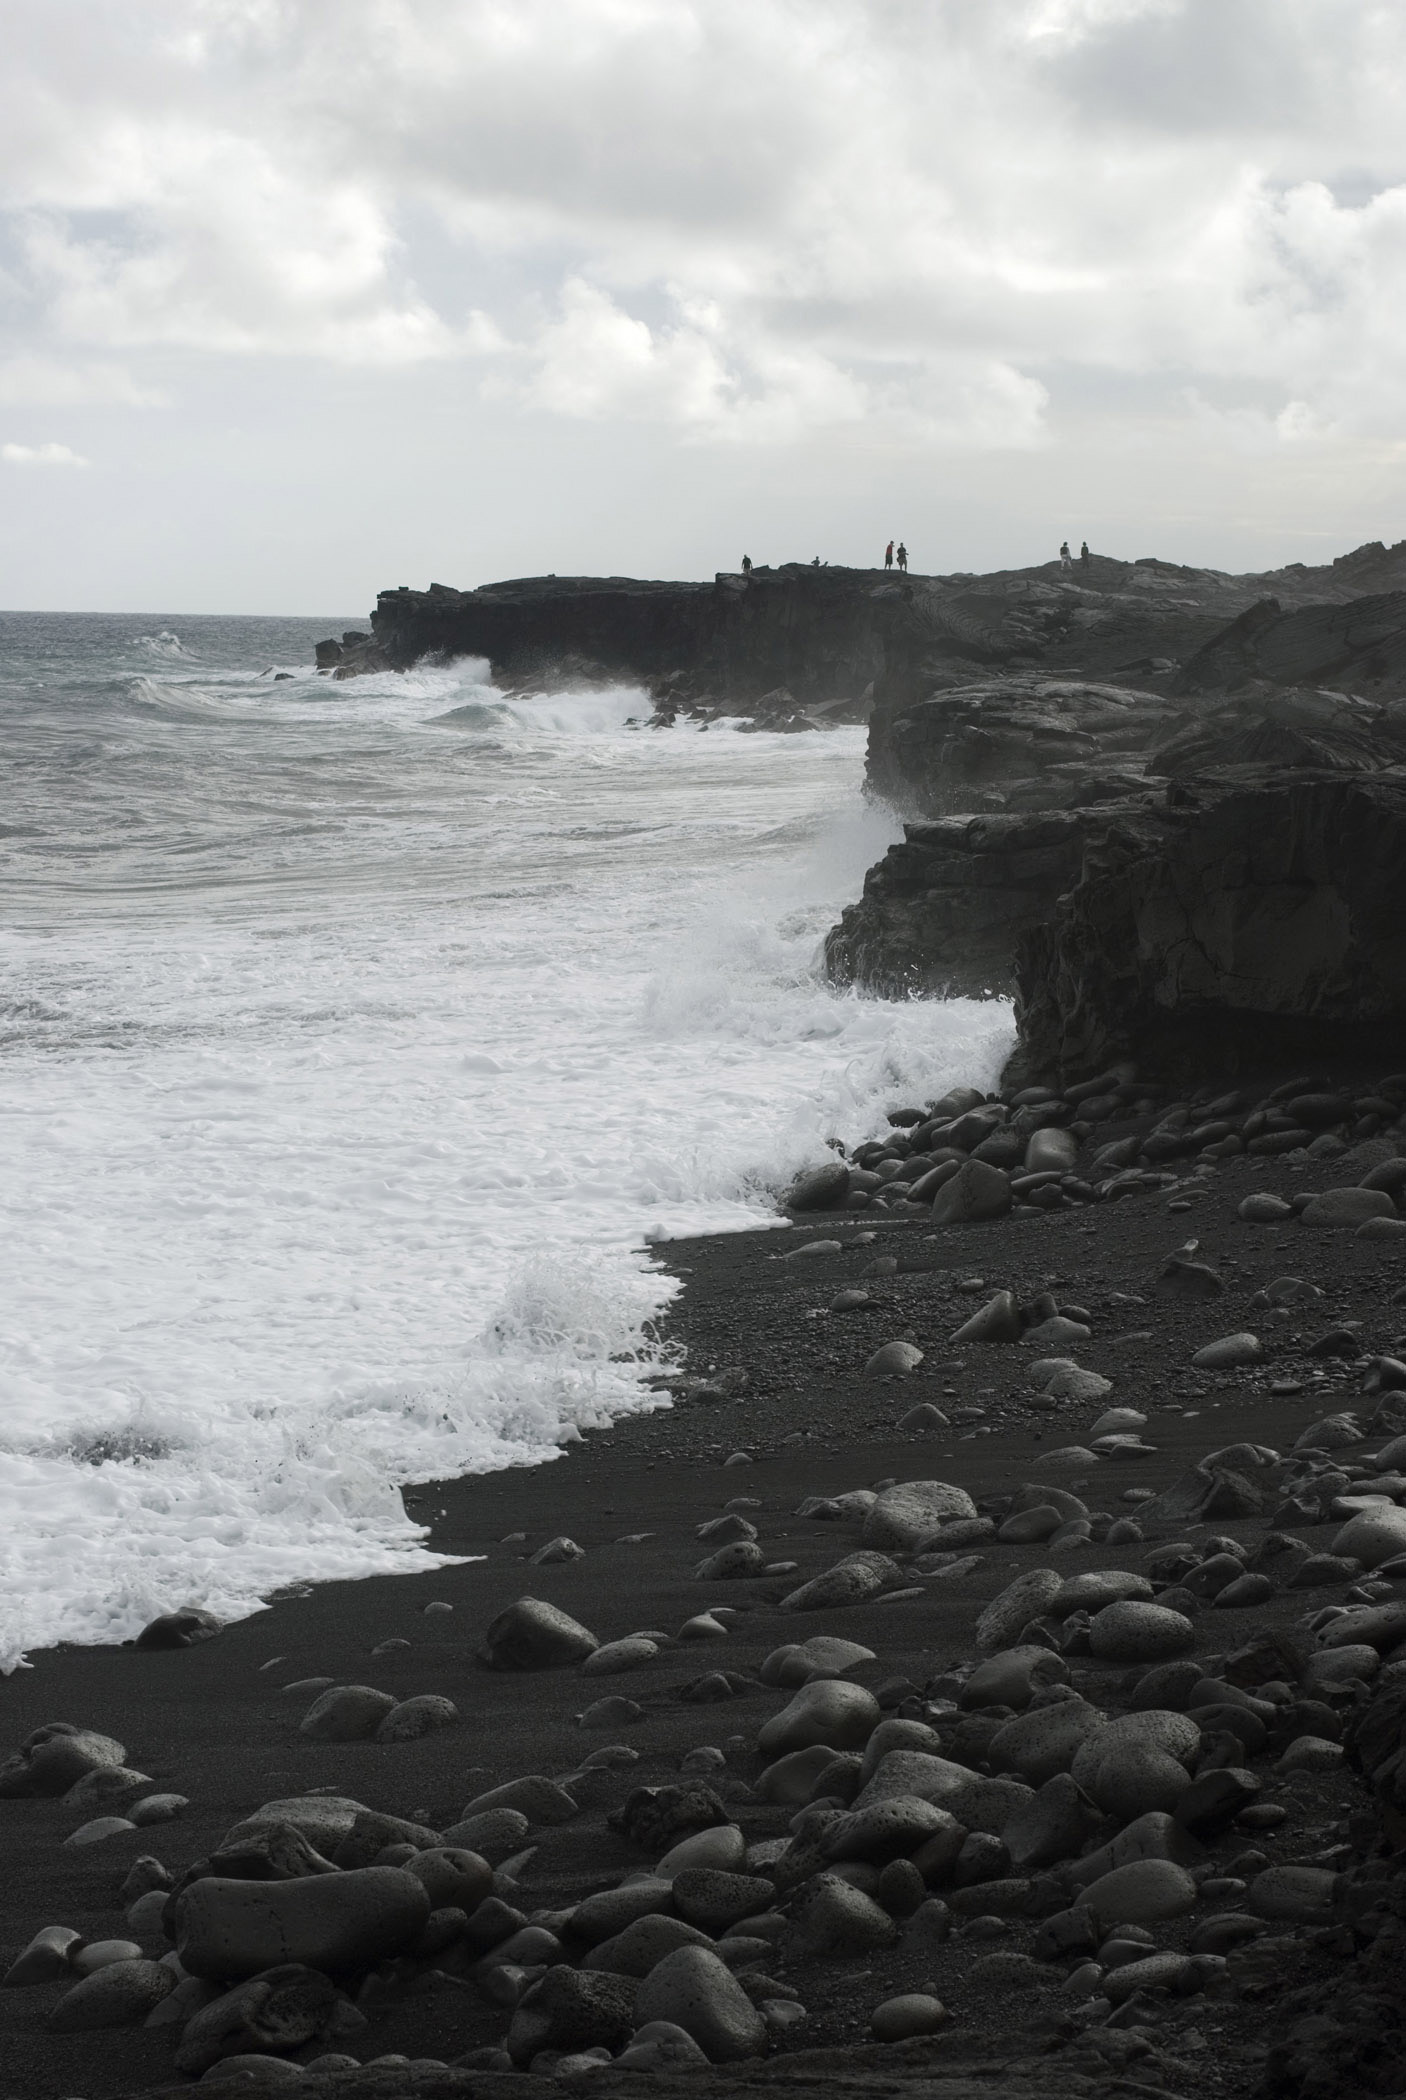 Gray Scale Beautiful Kalapana Beach Seashore at Hawaii